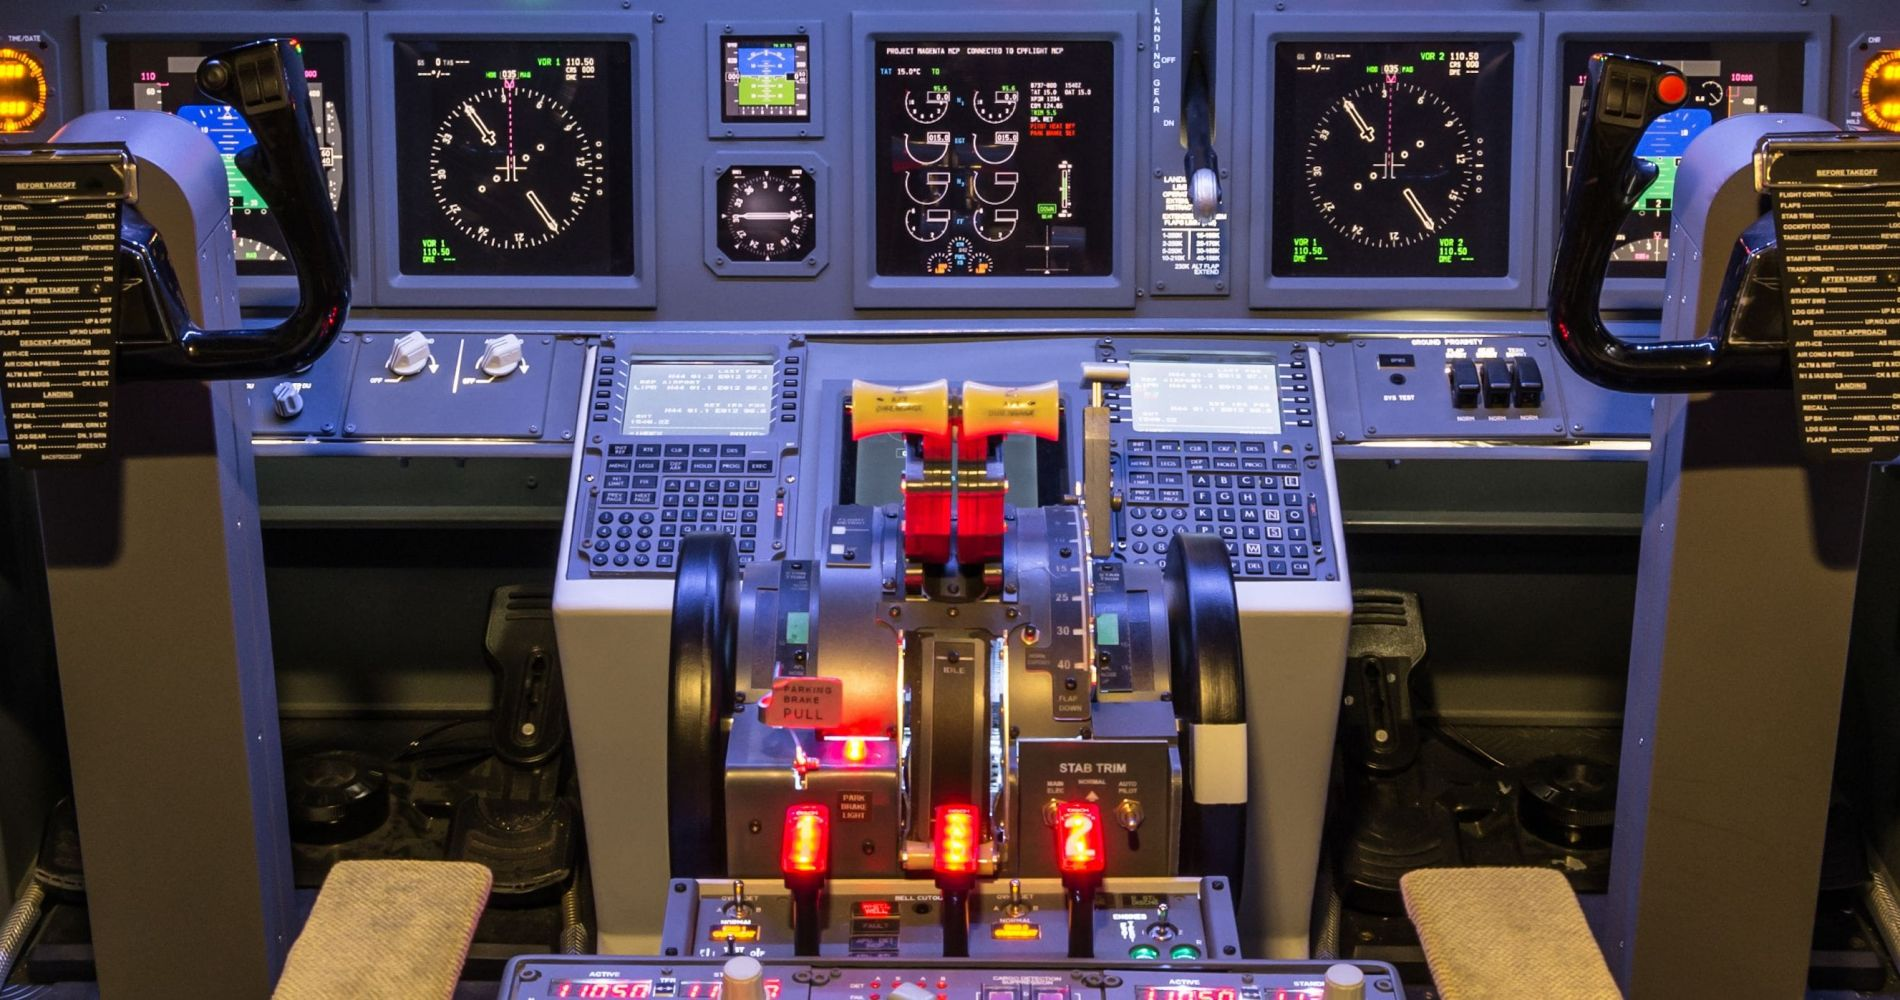 Unique 30 mins. Experience with 737 Flight Simulator in the UK for Two